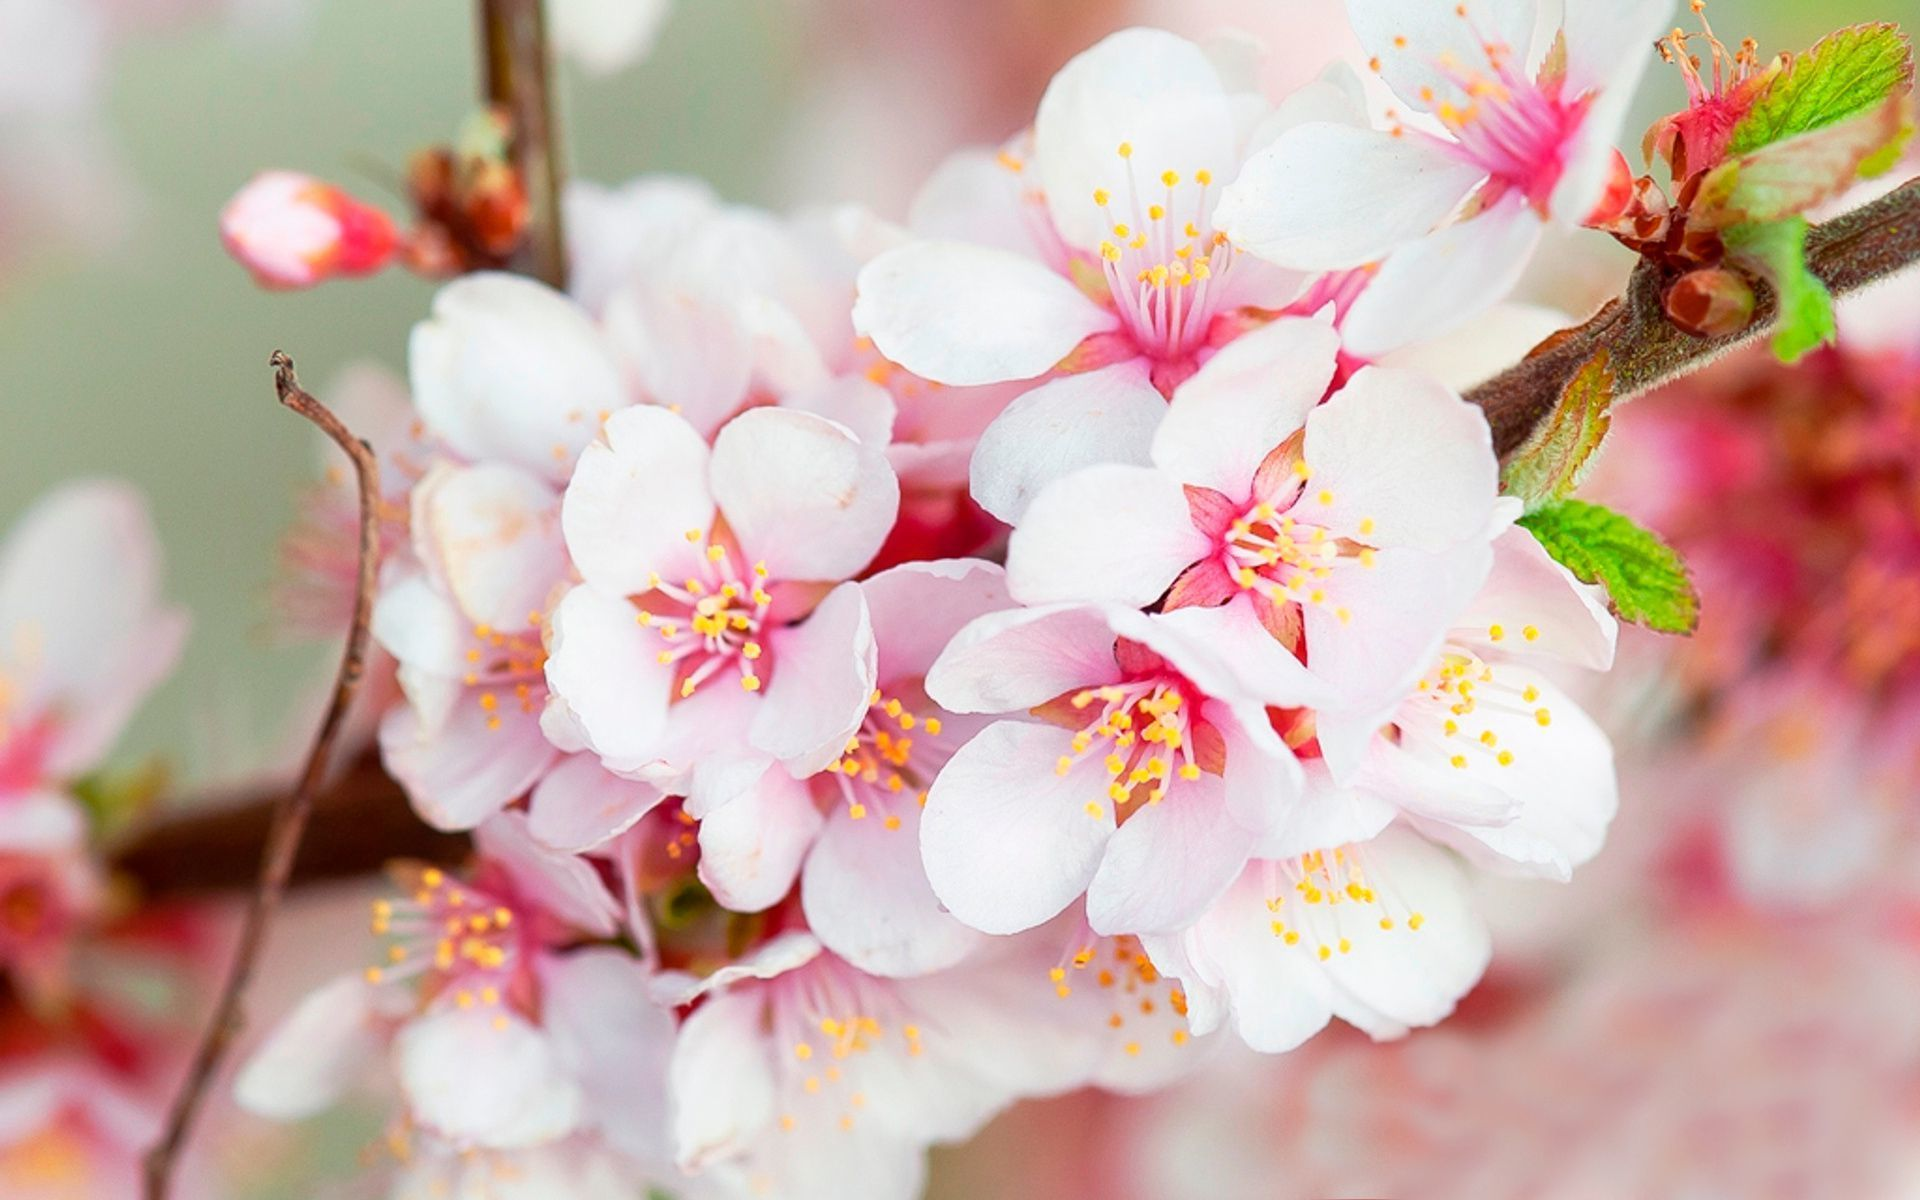 Wonderful Cherry Blossom Wallpapers Jpg 1920 1200 With Images